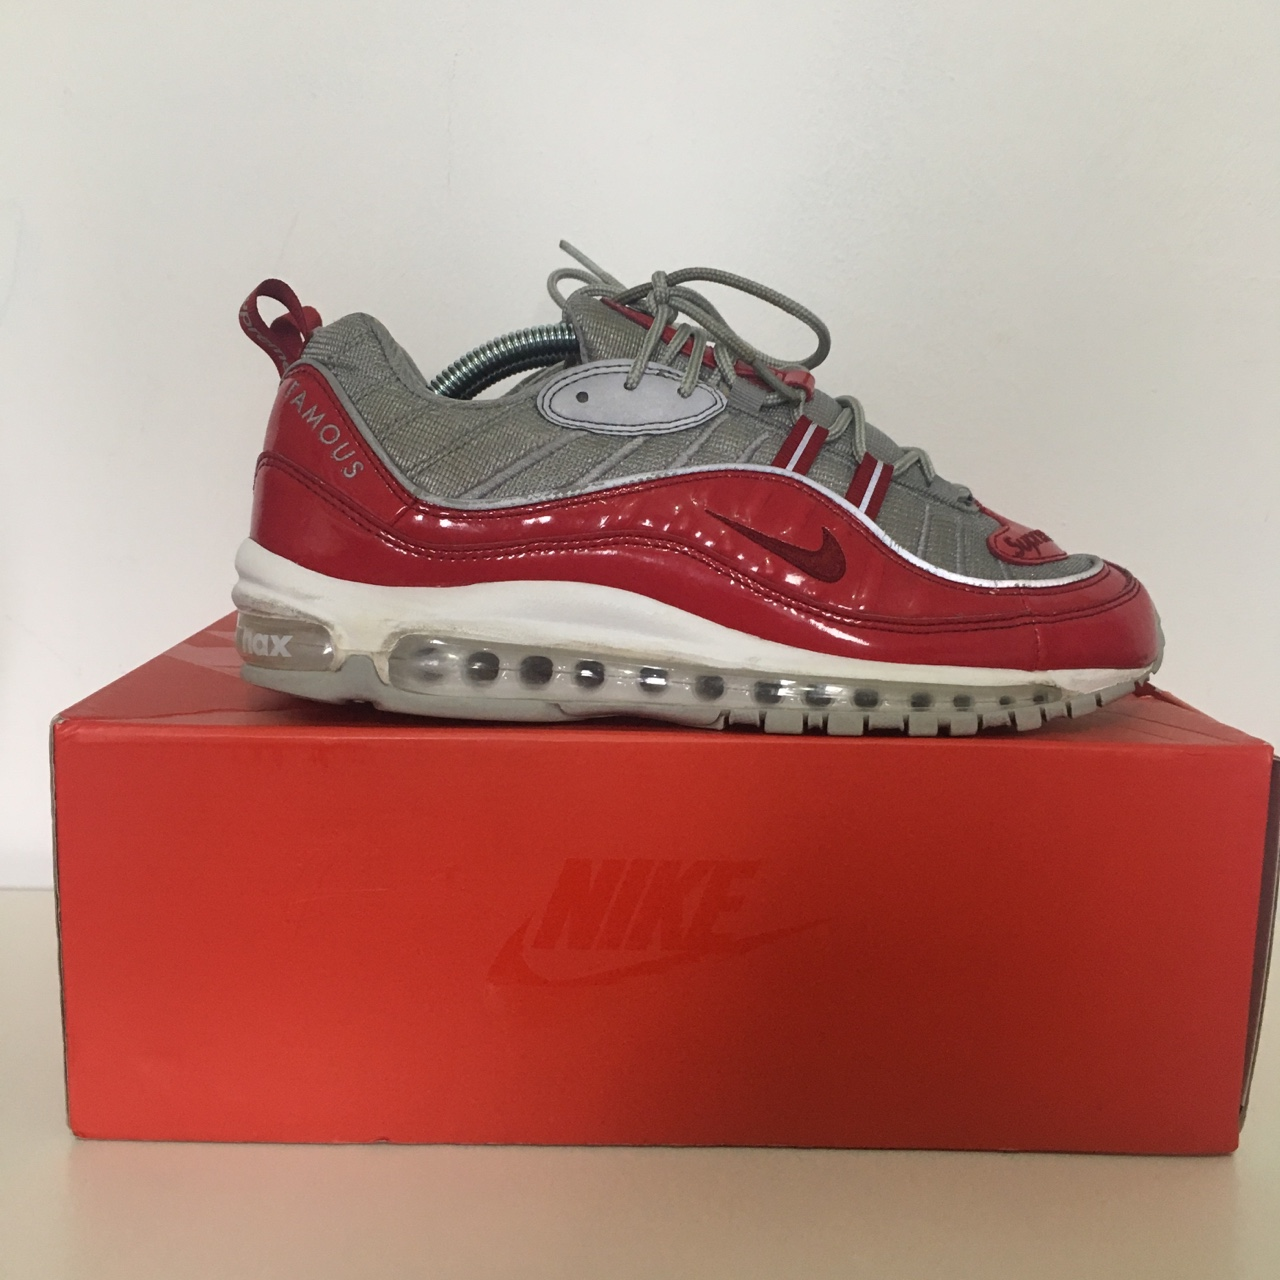 watch 56de5 7c93a Supreme air max 98s, red. UK8. 8/10 condition. OG box - Depop